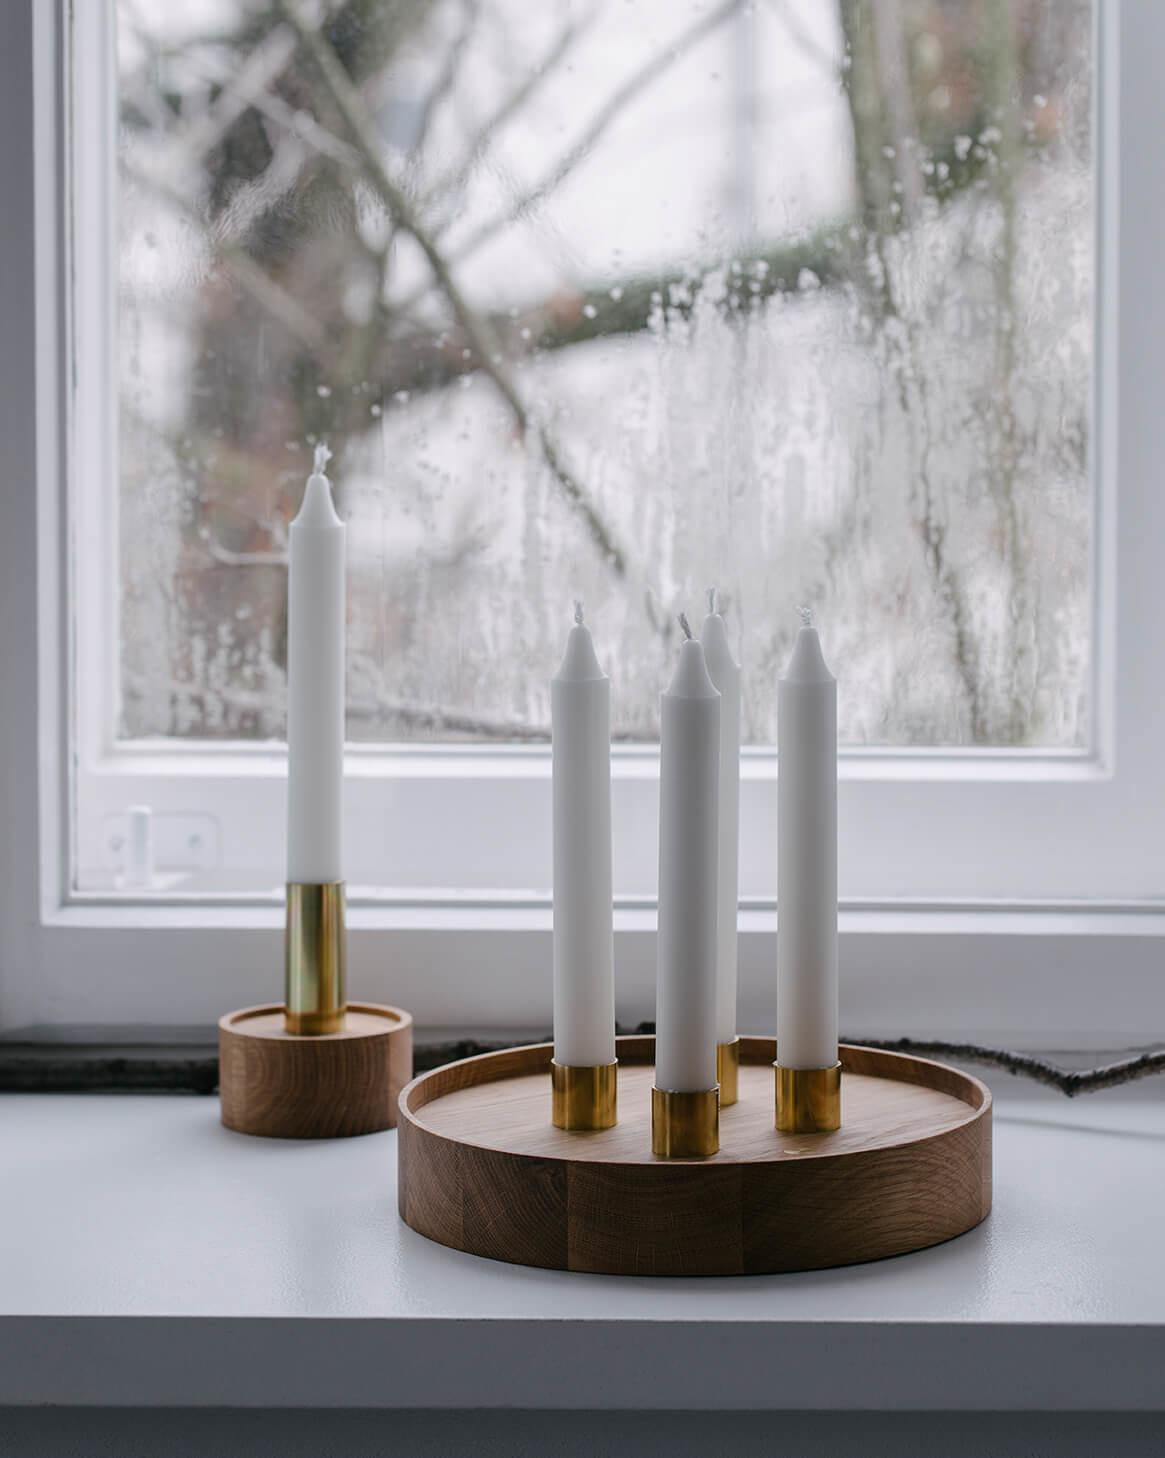 Enlightenment Candleholder Furniture Swallow Tail